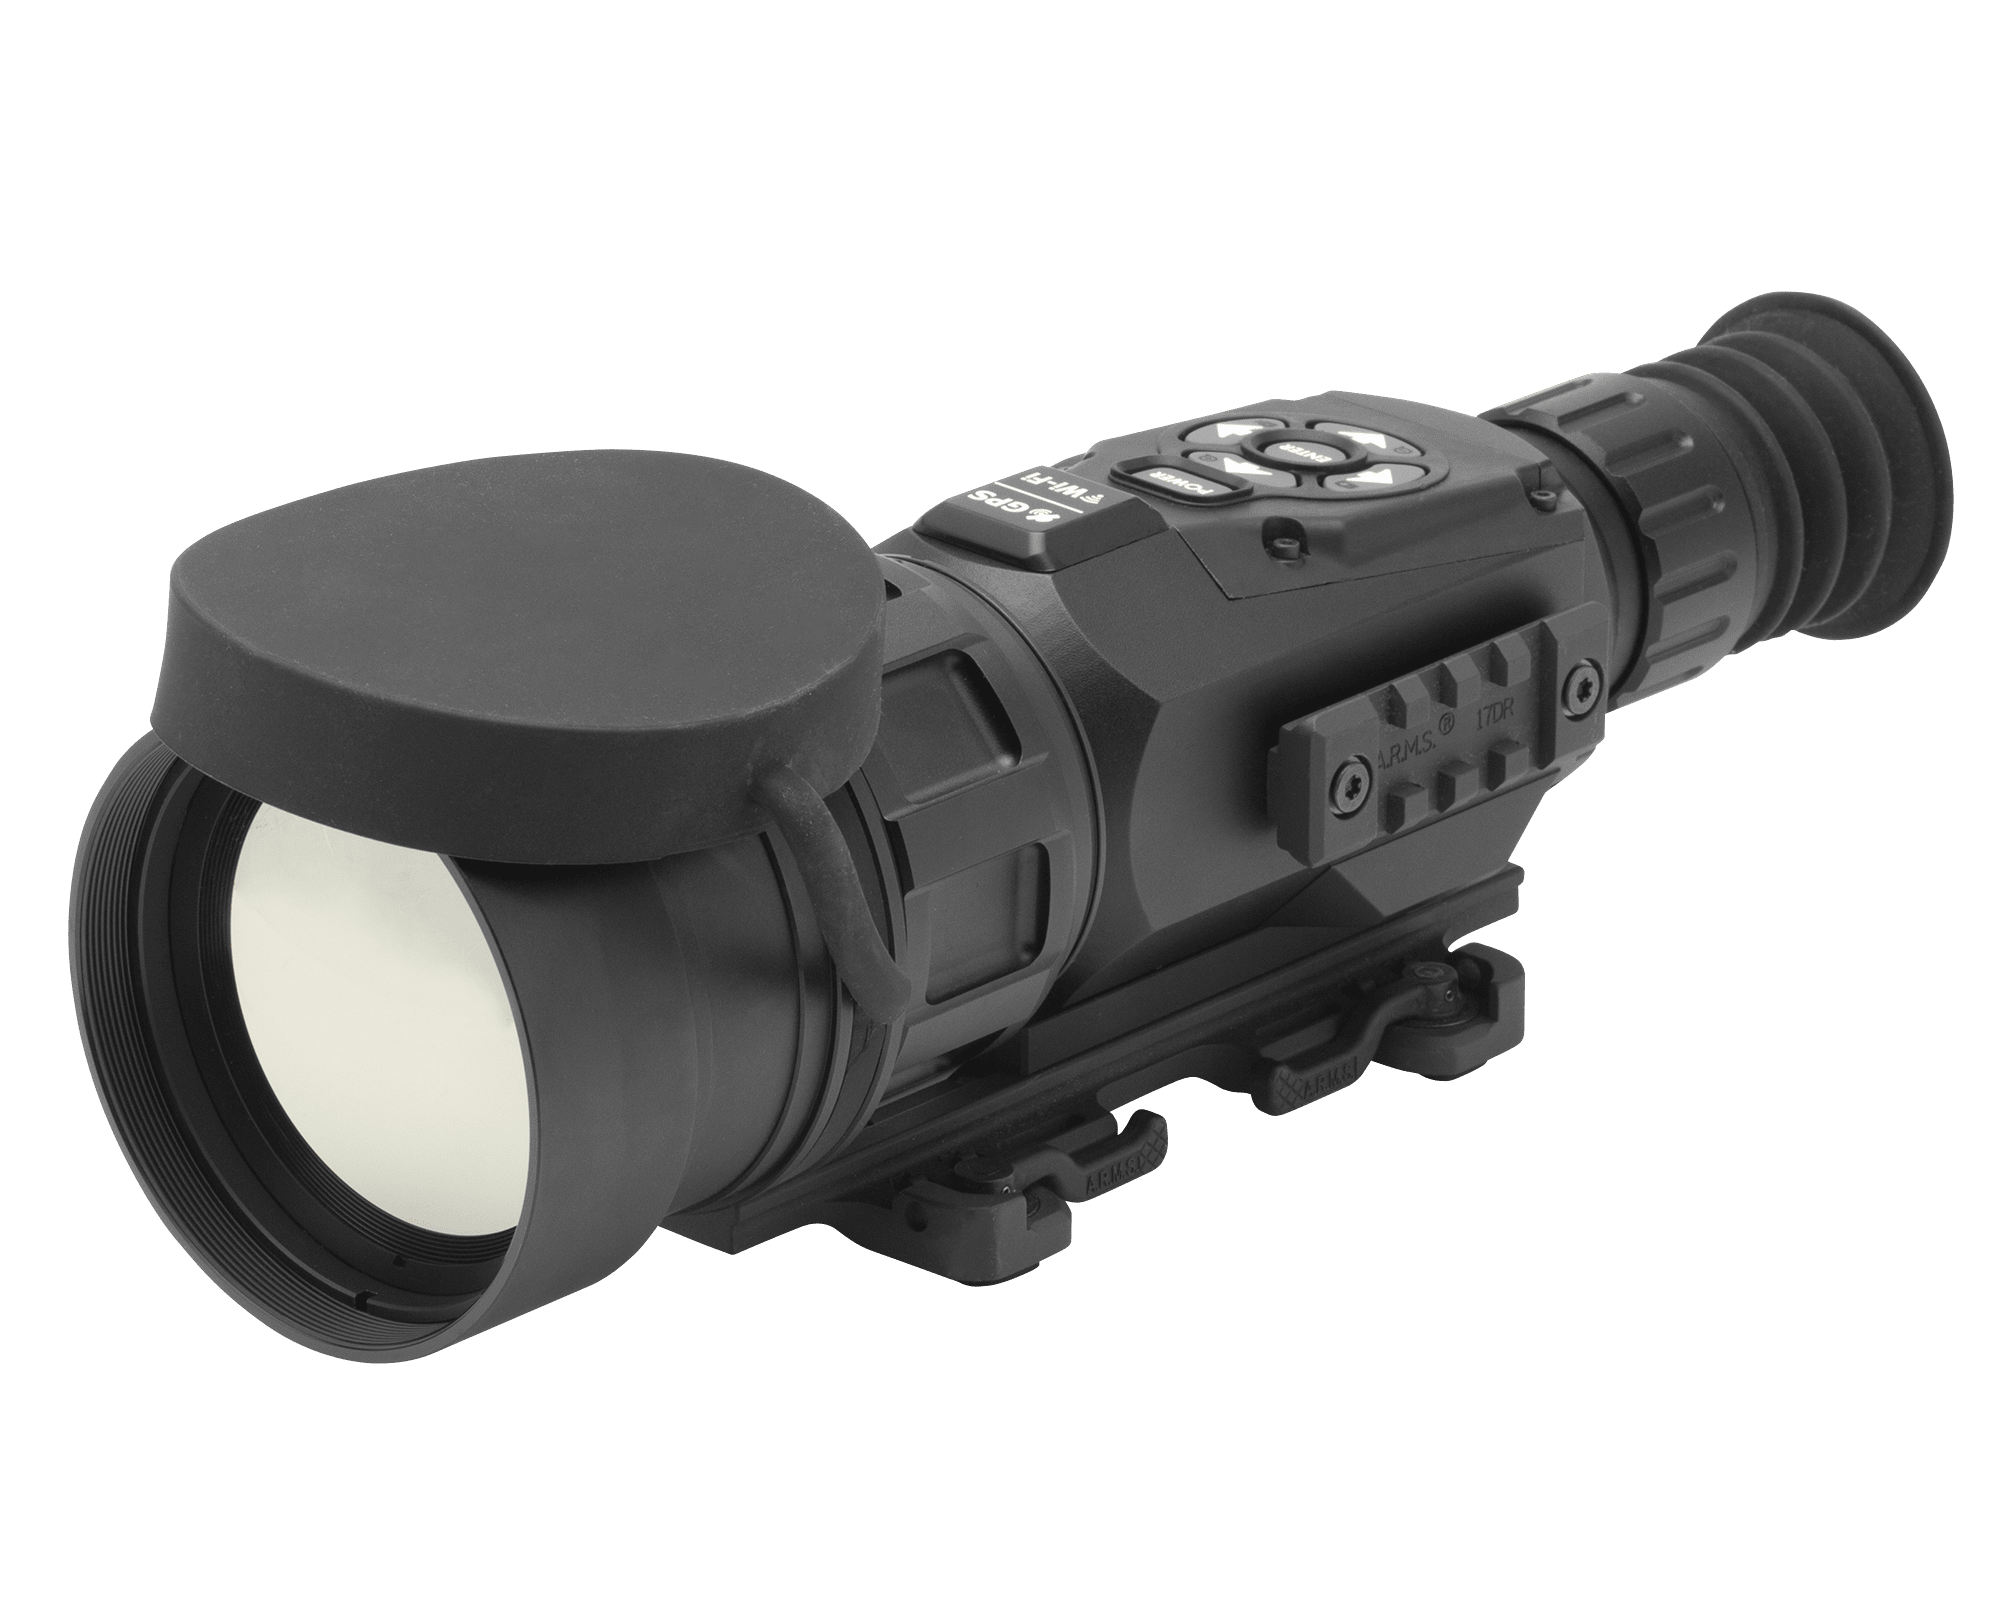 Weapon clip thermal rifle scope. Atn thor hd x